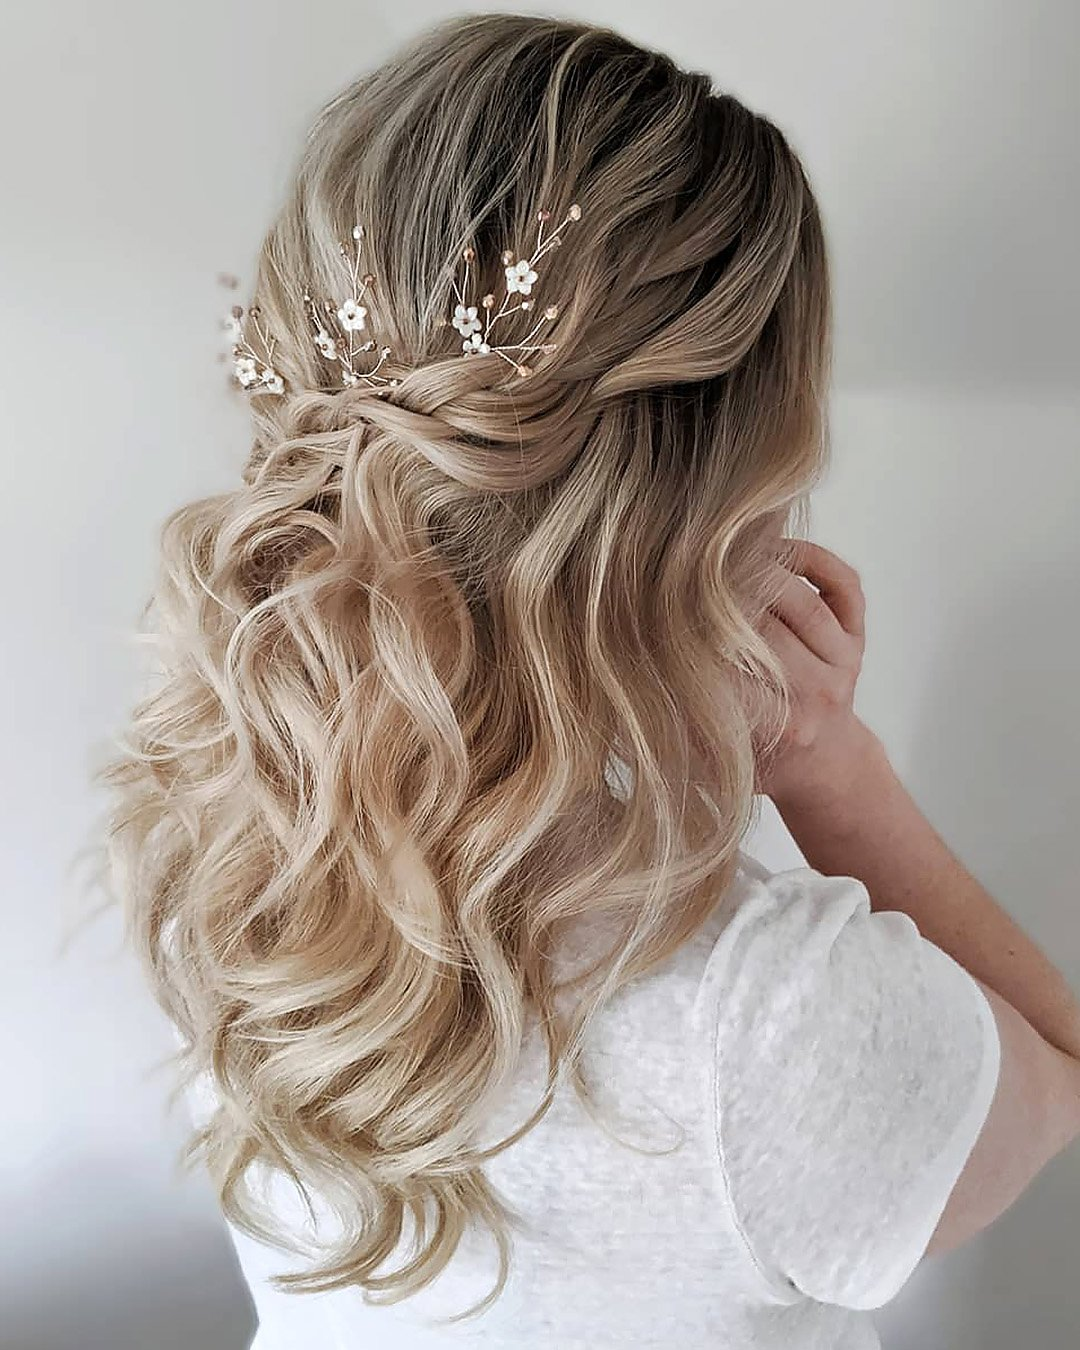 half up half down wedding hairstyles simple casual curls braids hannahblinkohairstylist